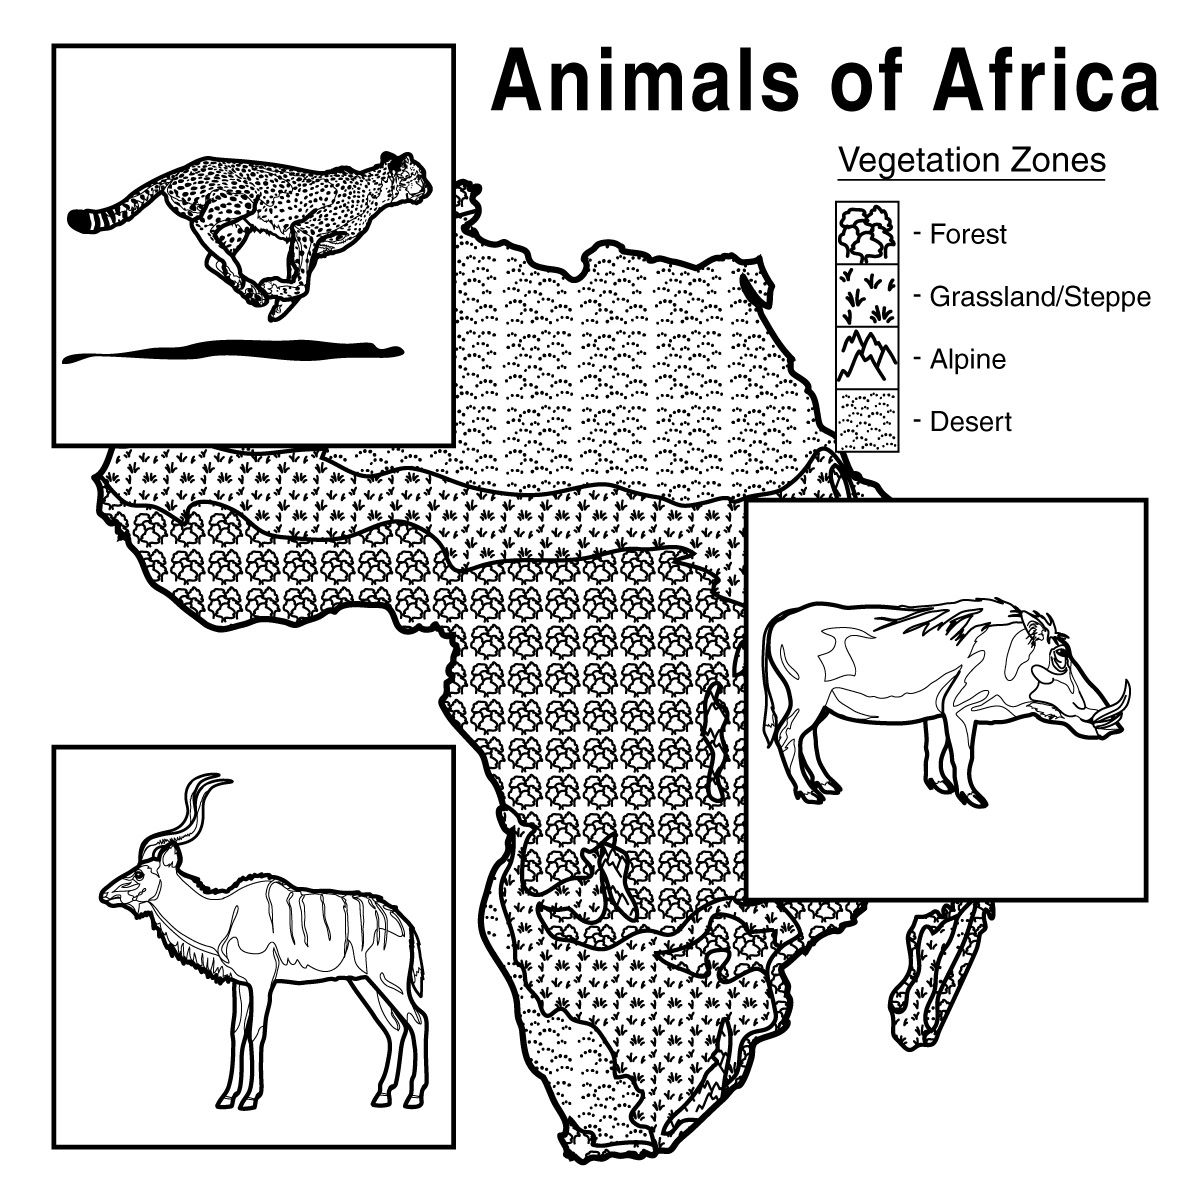 African Animals With Habitat Vegetation Zone Chart